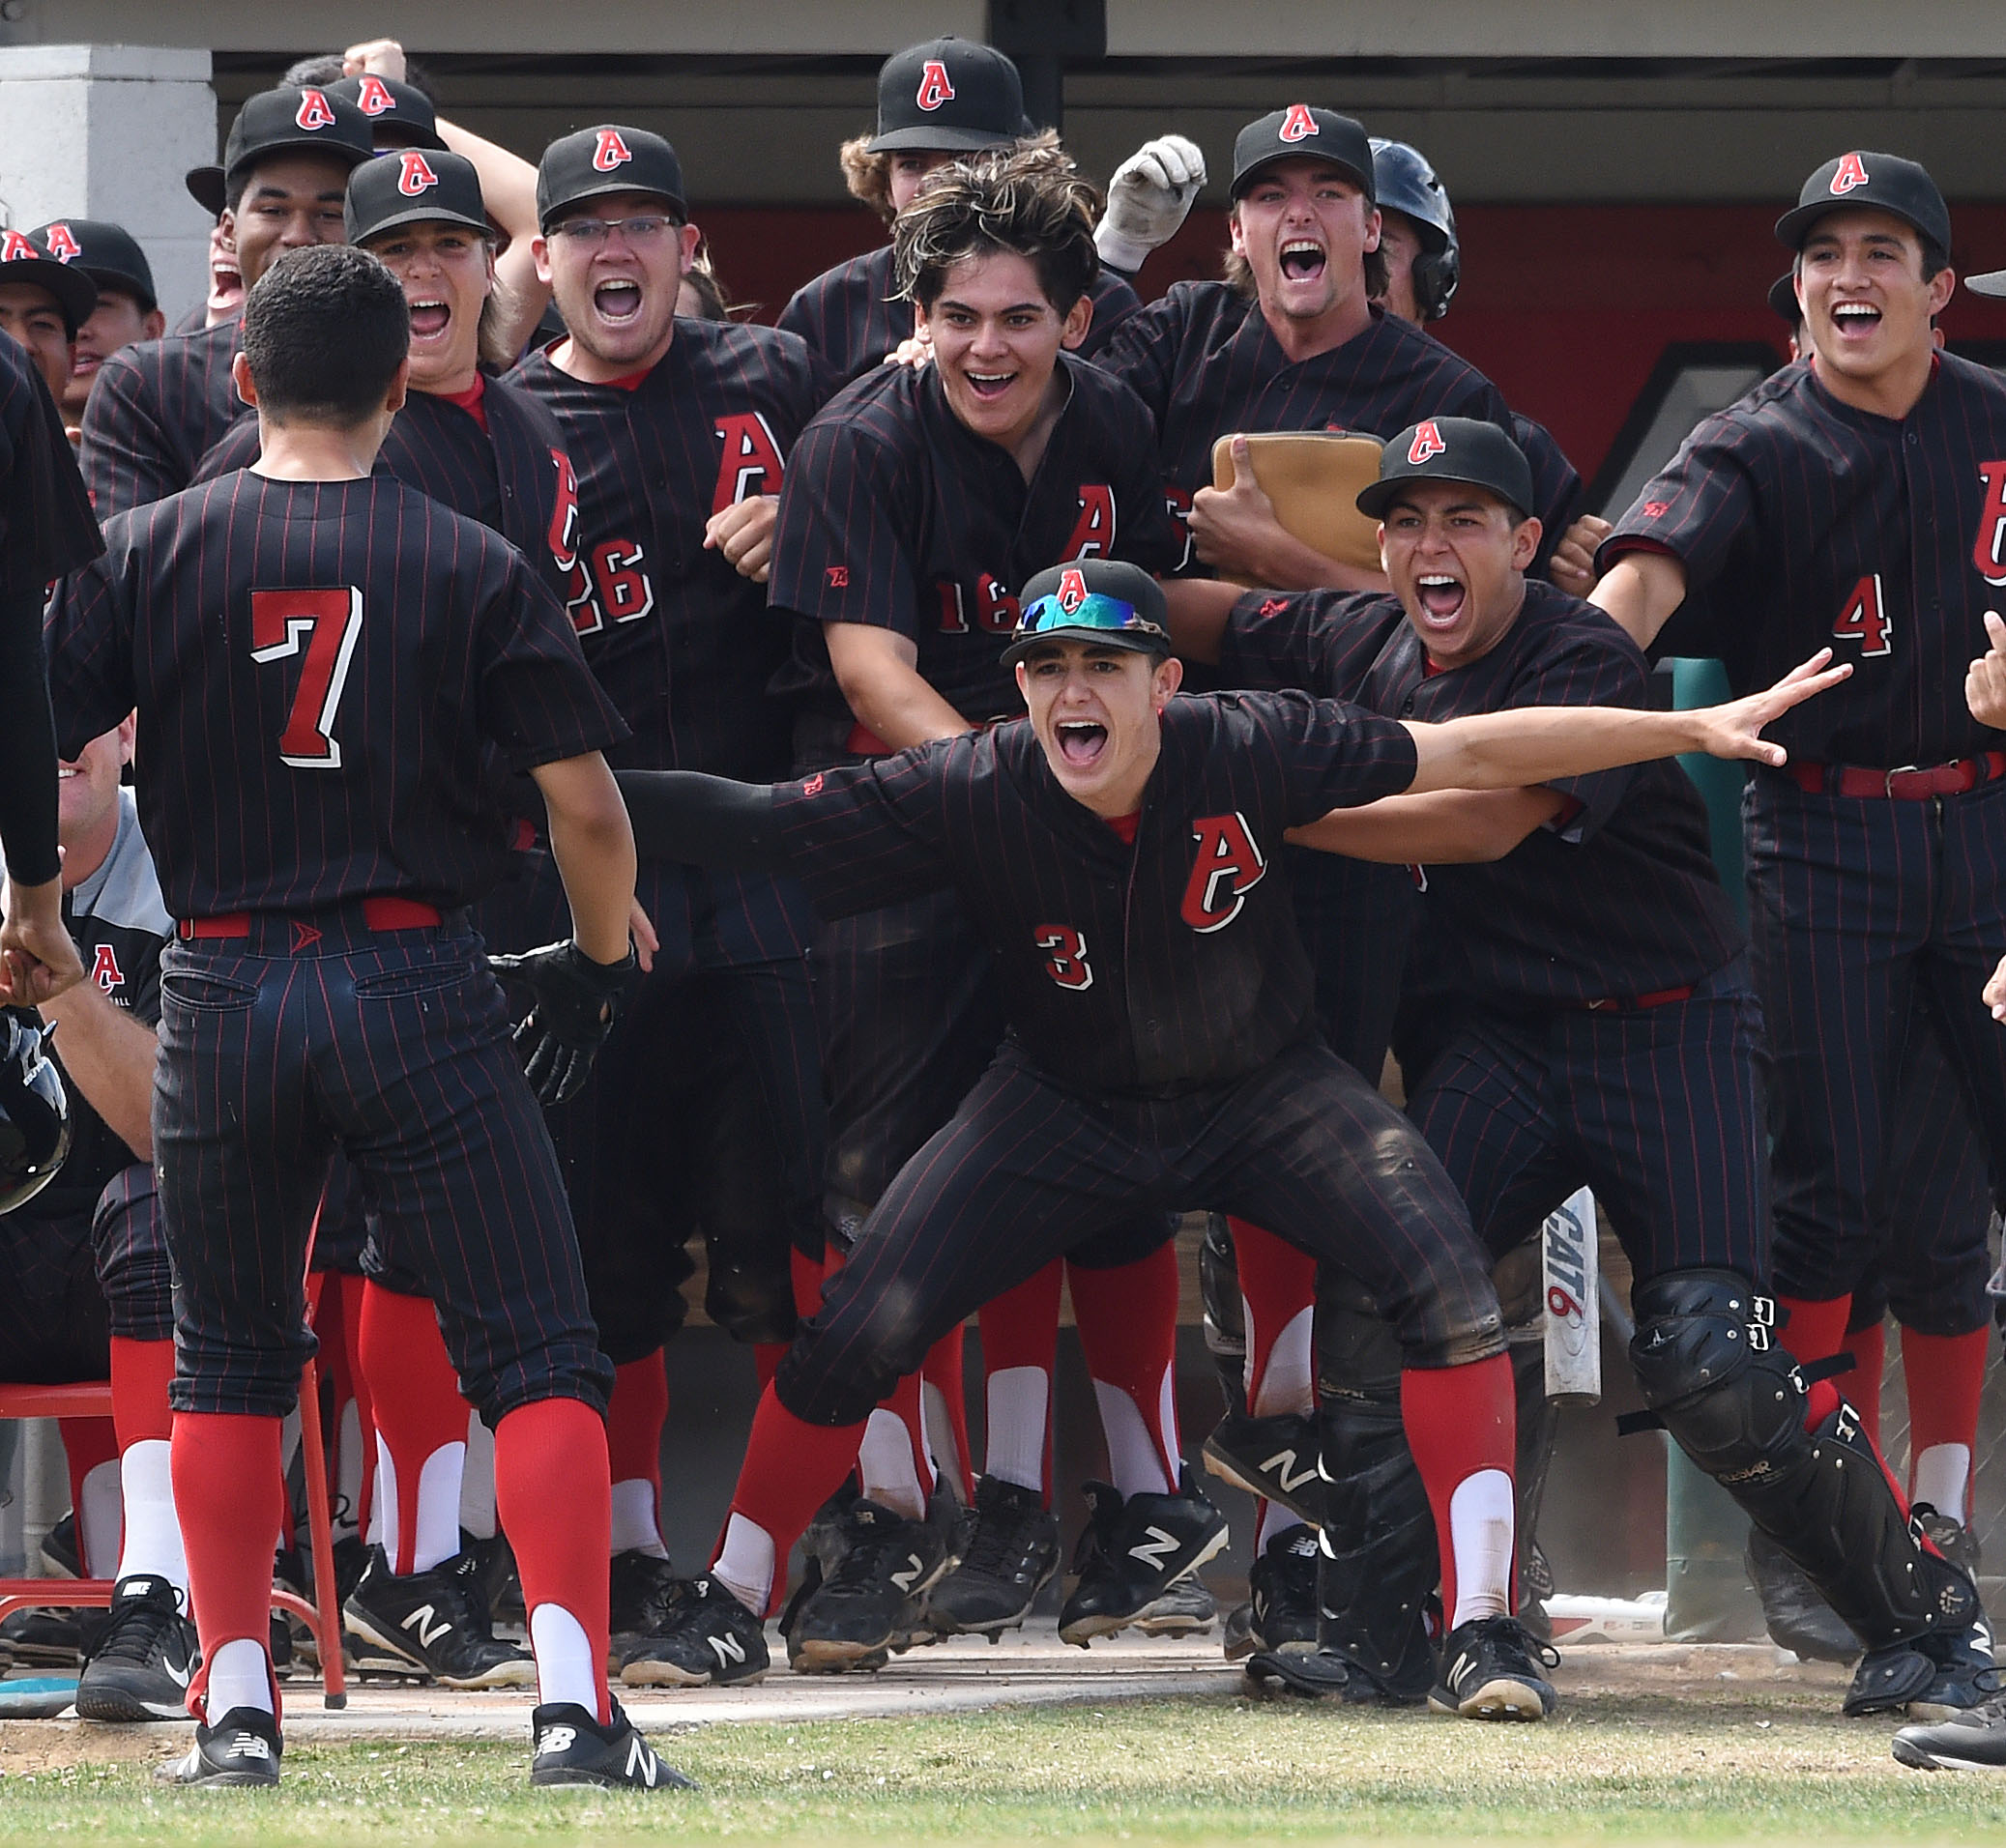 Ayala players celebrate as they prepare to greet teammate Daniel Mendez (7) after hitting a 3-run home run against Yucaipa during the fourth inning Tuesday. Yucaipa eliminates Ayala 7-3 in a prep baseball CIF Southern Section Division 2 semifinal playoff game Tuesday May 29, 2018 at Ayala High School in Chino Hills, Calif.